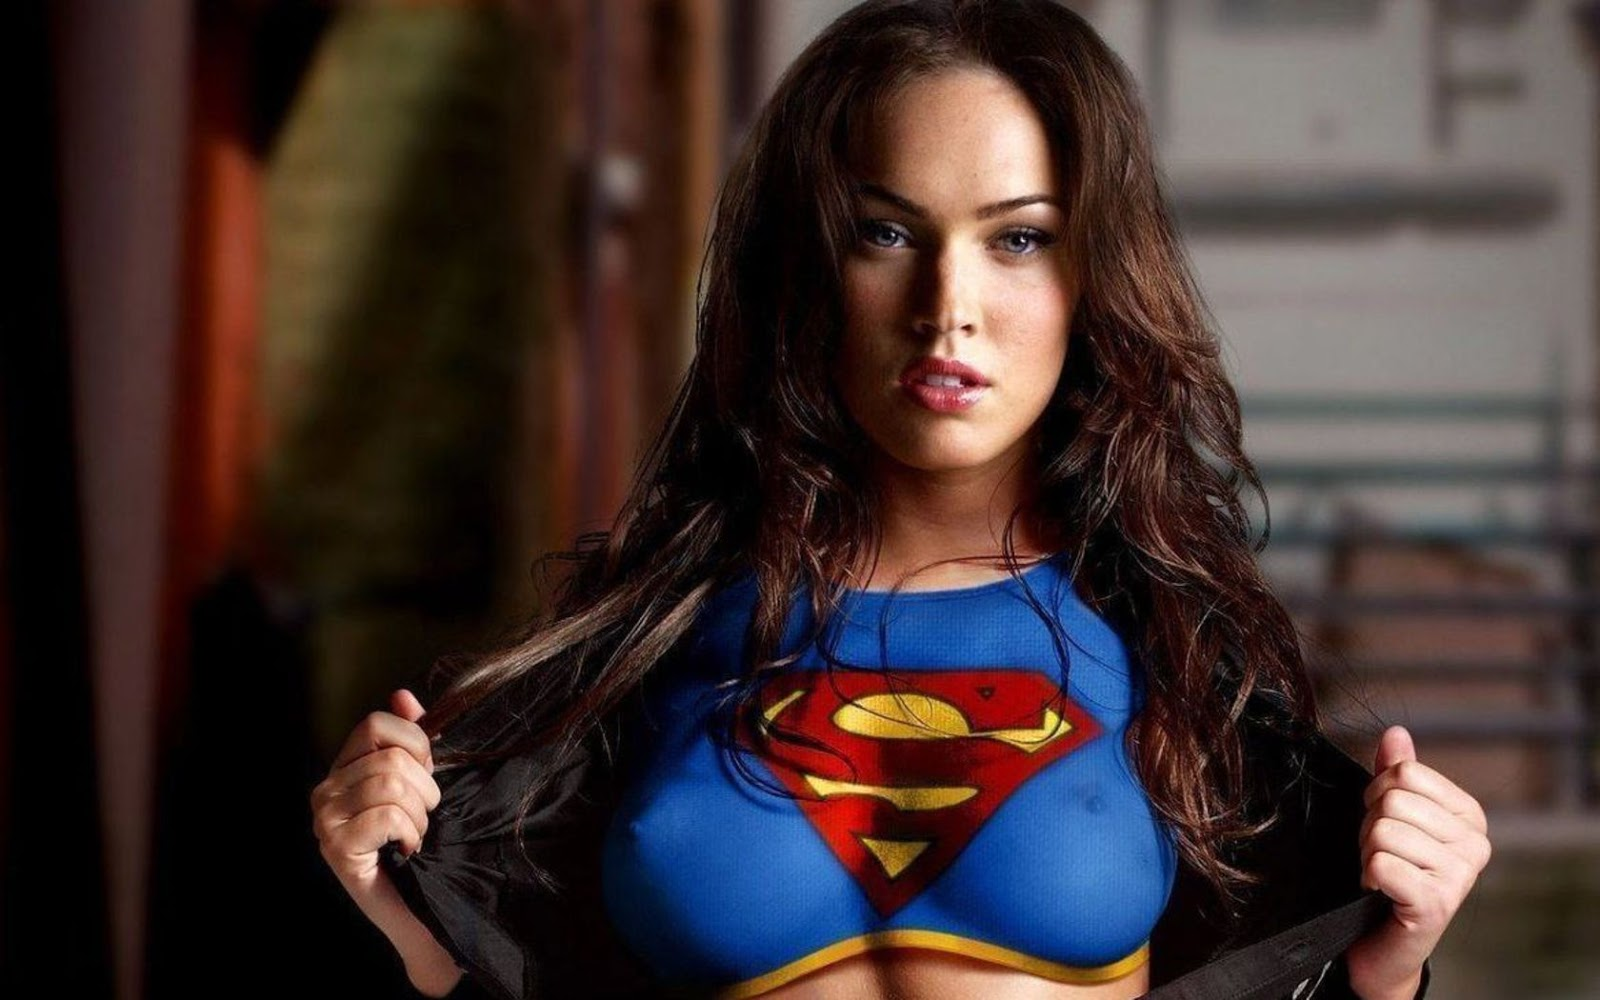 megan fox super girl wallpaper - Megan Fox Wallpaper ...